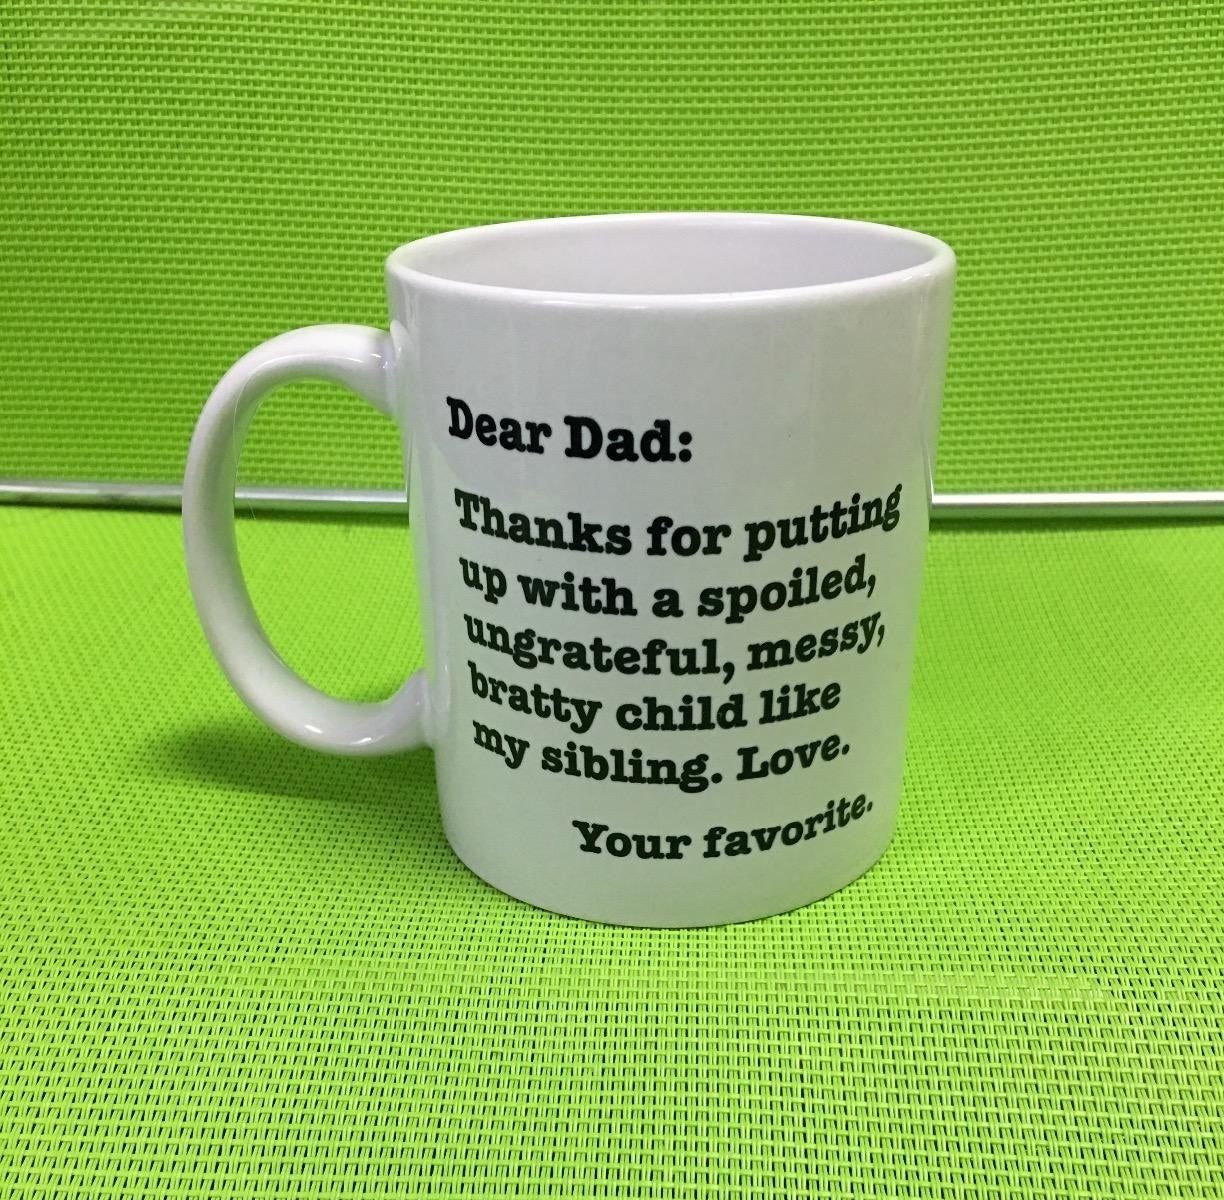 """White coffee mug that says, """"Dear Dad: Thanks for putting up with a spoiled, ungrateful, mess, bratty child like my sibling. Love. Your favorite."""""""